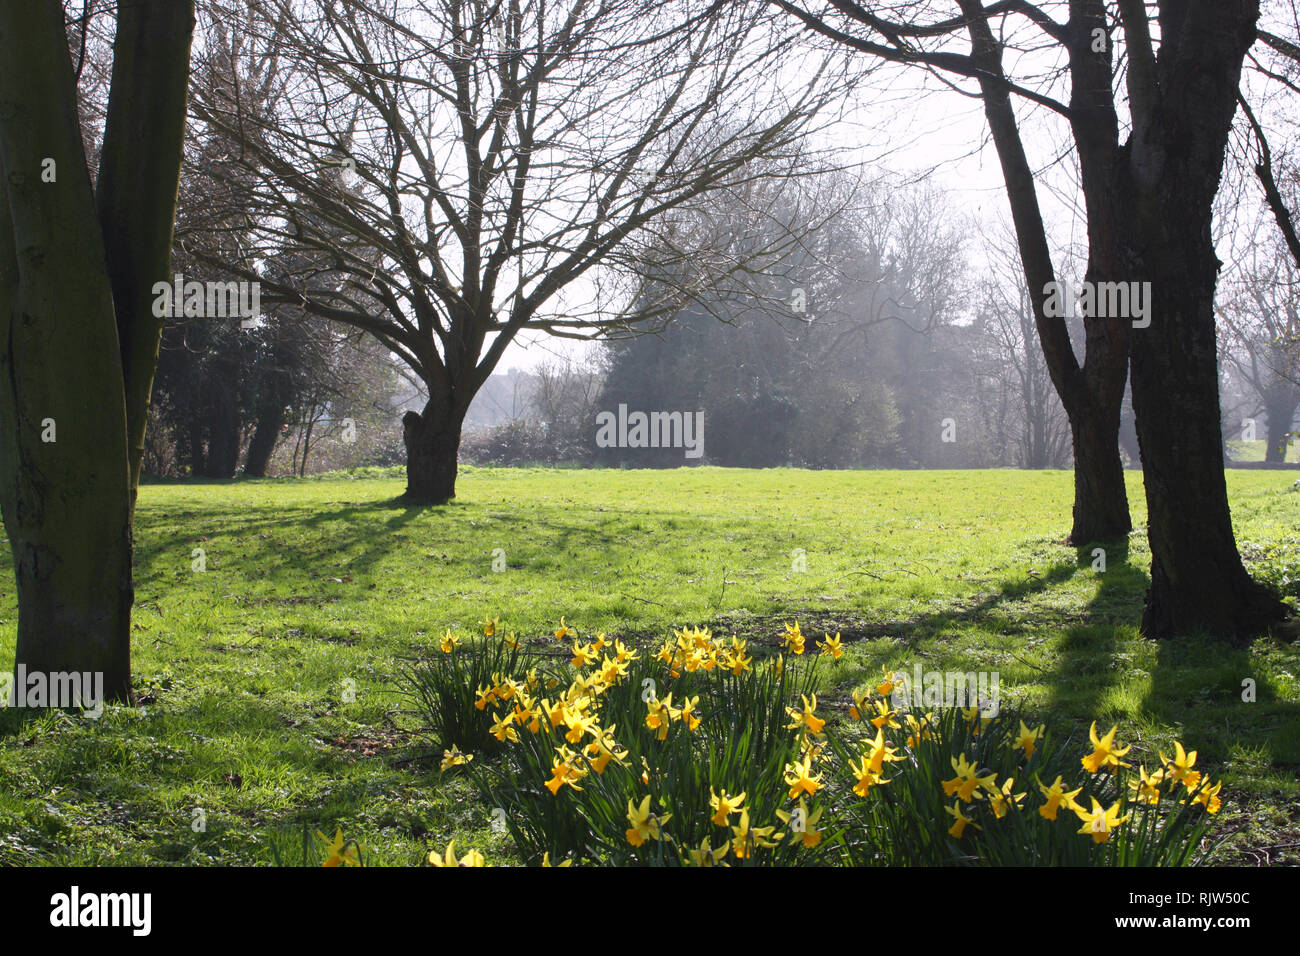 Daffodil blooms in a park in spring season Stock Photo